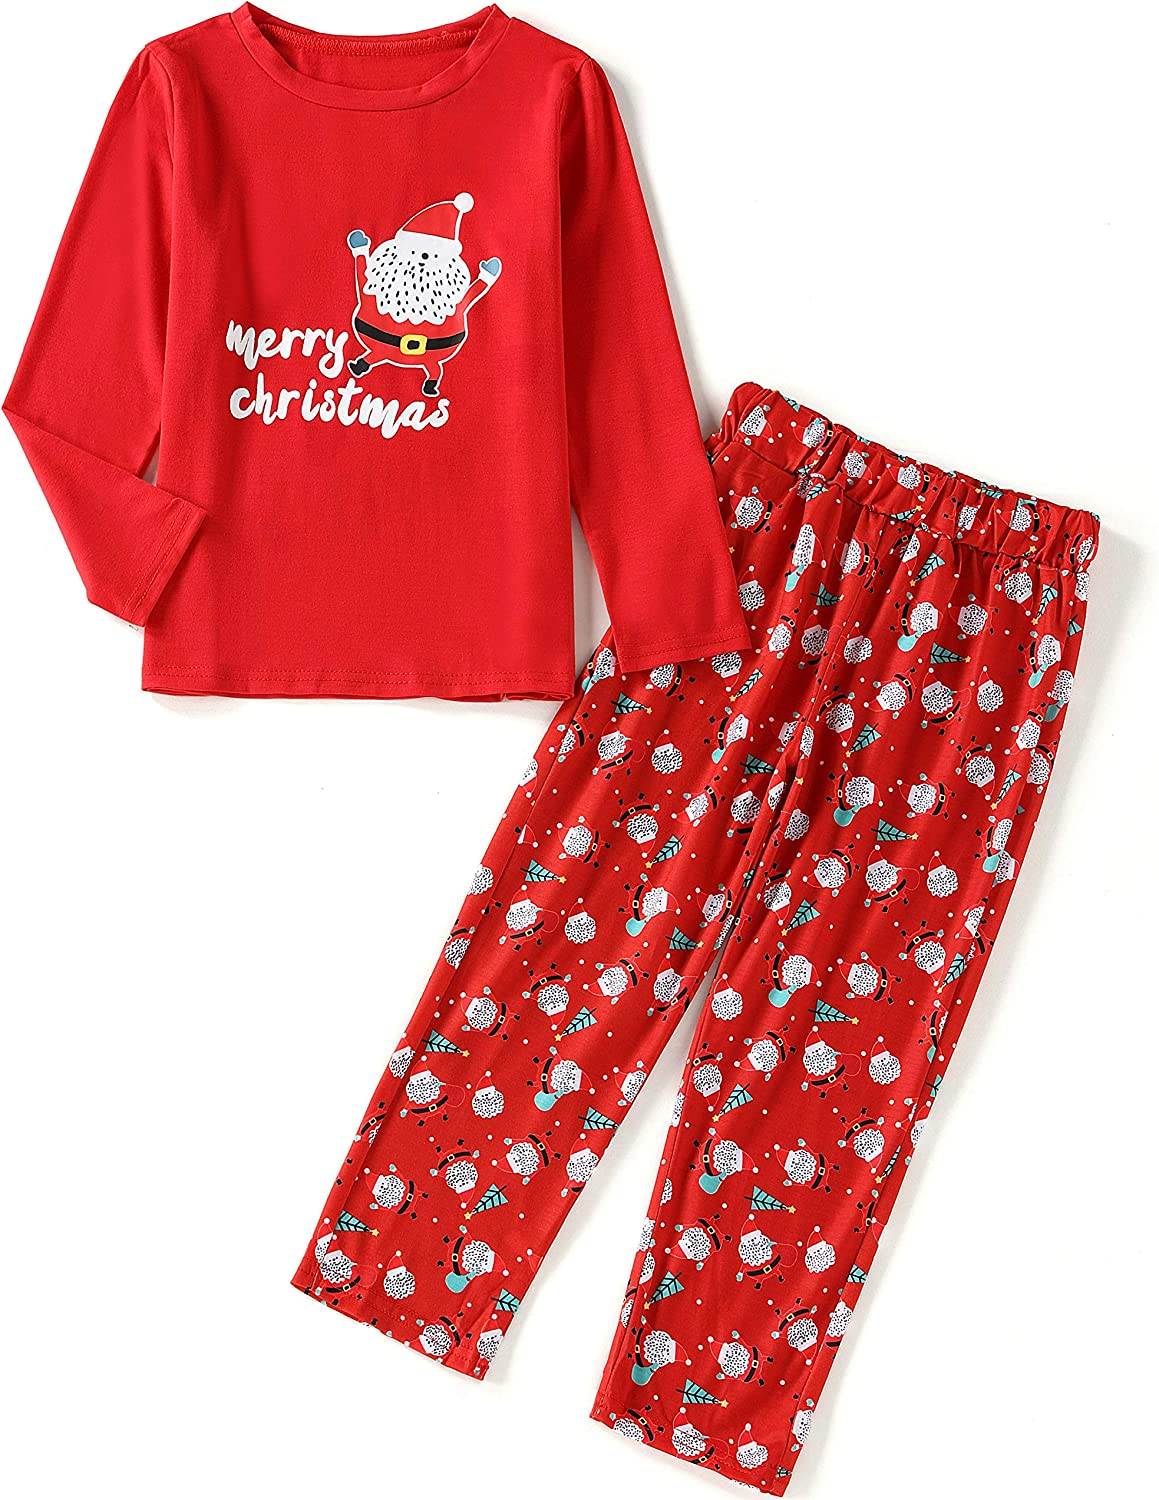 kylin4835 Christmas Pajamas for Family X-Large Matching Family Pajamas Christmas Santa Claus Sleepwear for The Family Boys and Girls PJs Sets Red